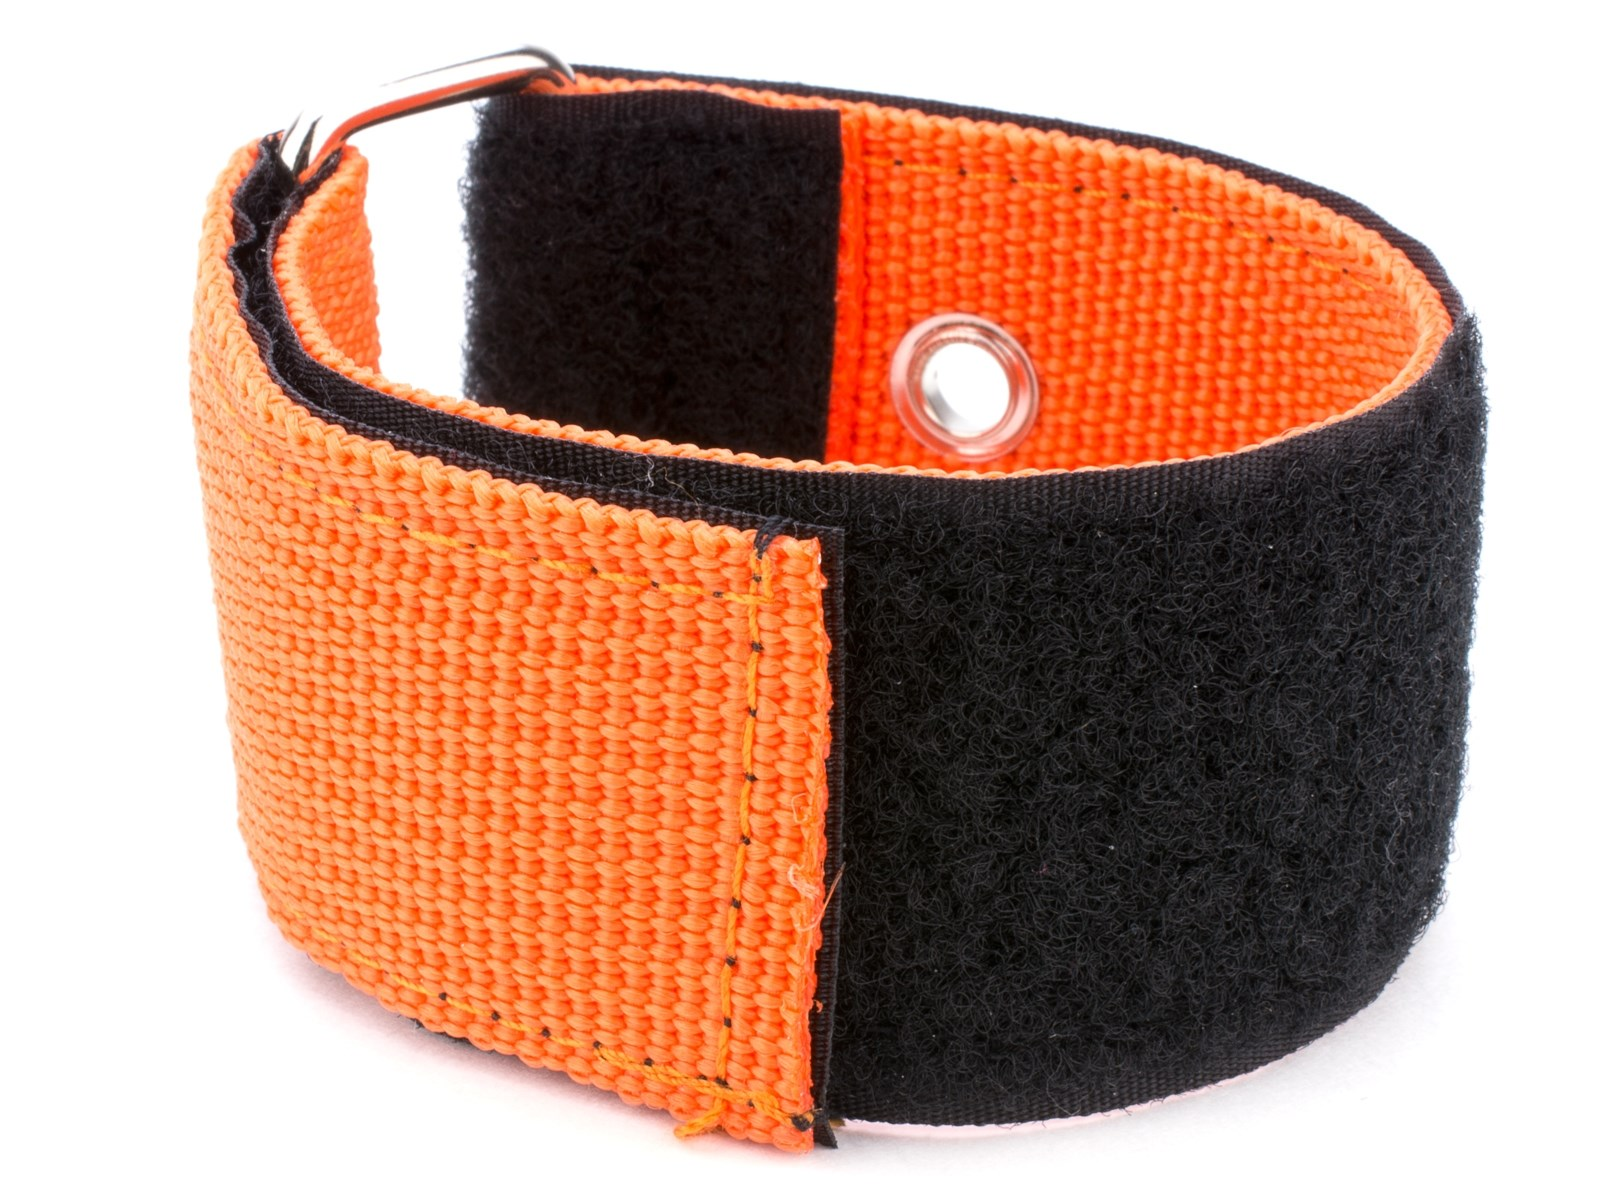 12 Inch Orange Cinch Strap - 2 Pack - Secure™ Cable Ties